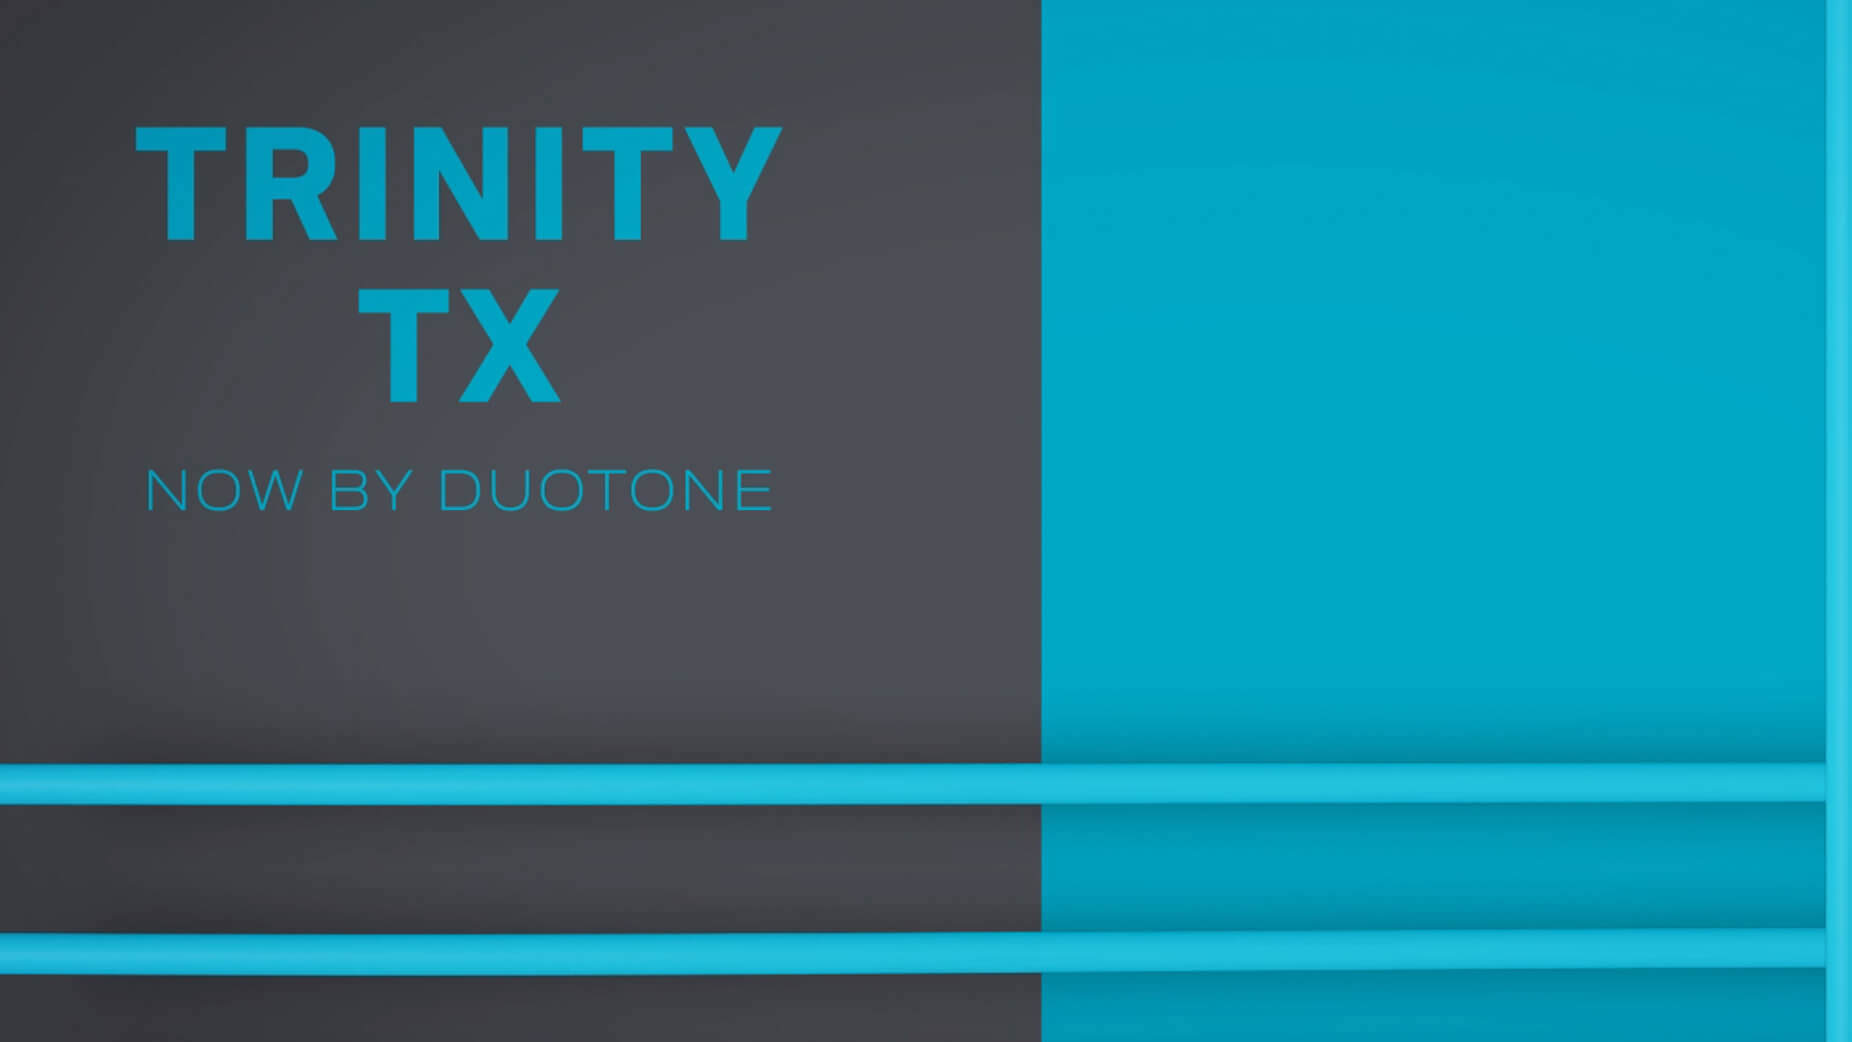 Duotone Trinity TX Video Overview